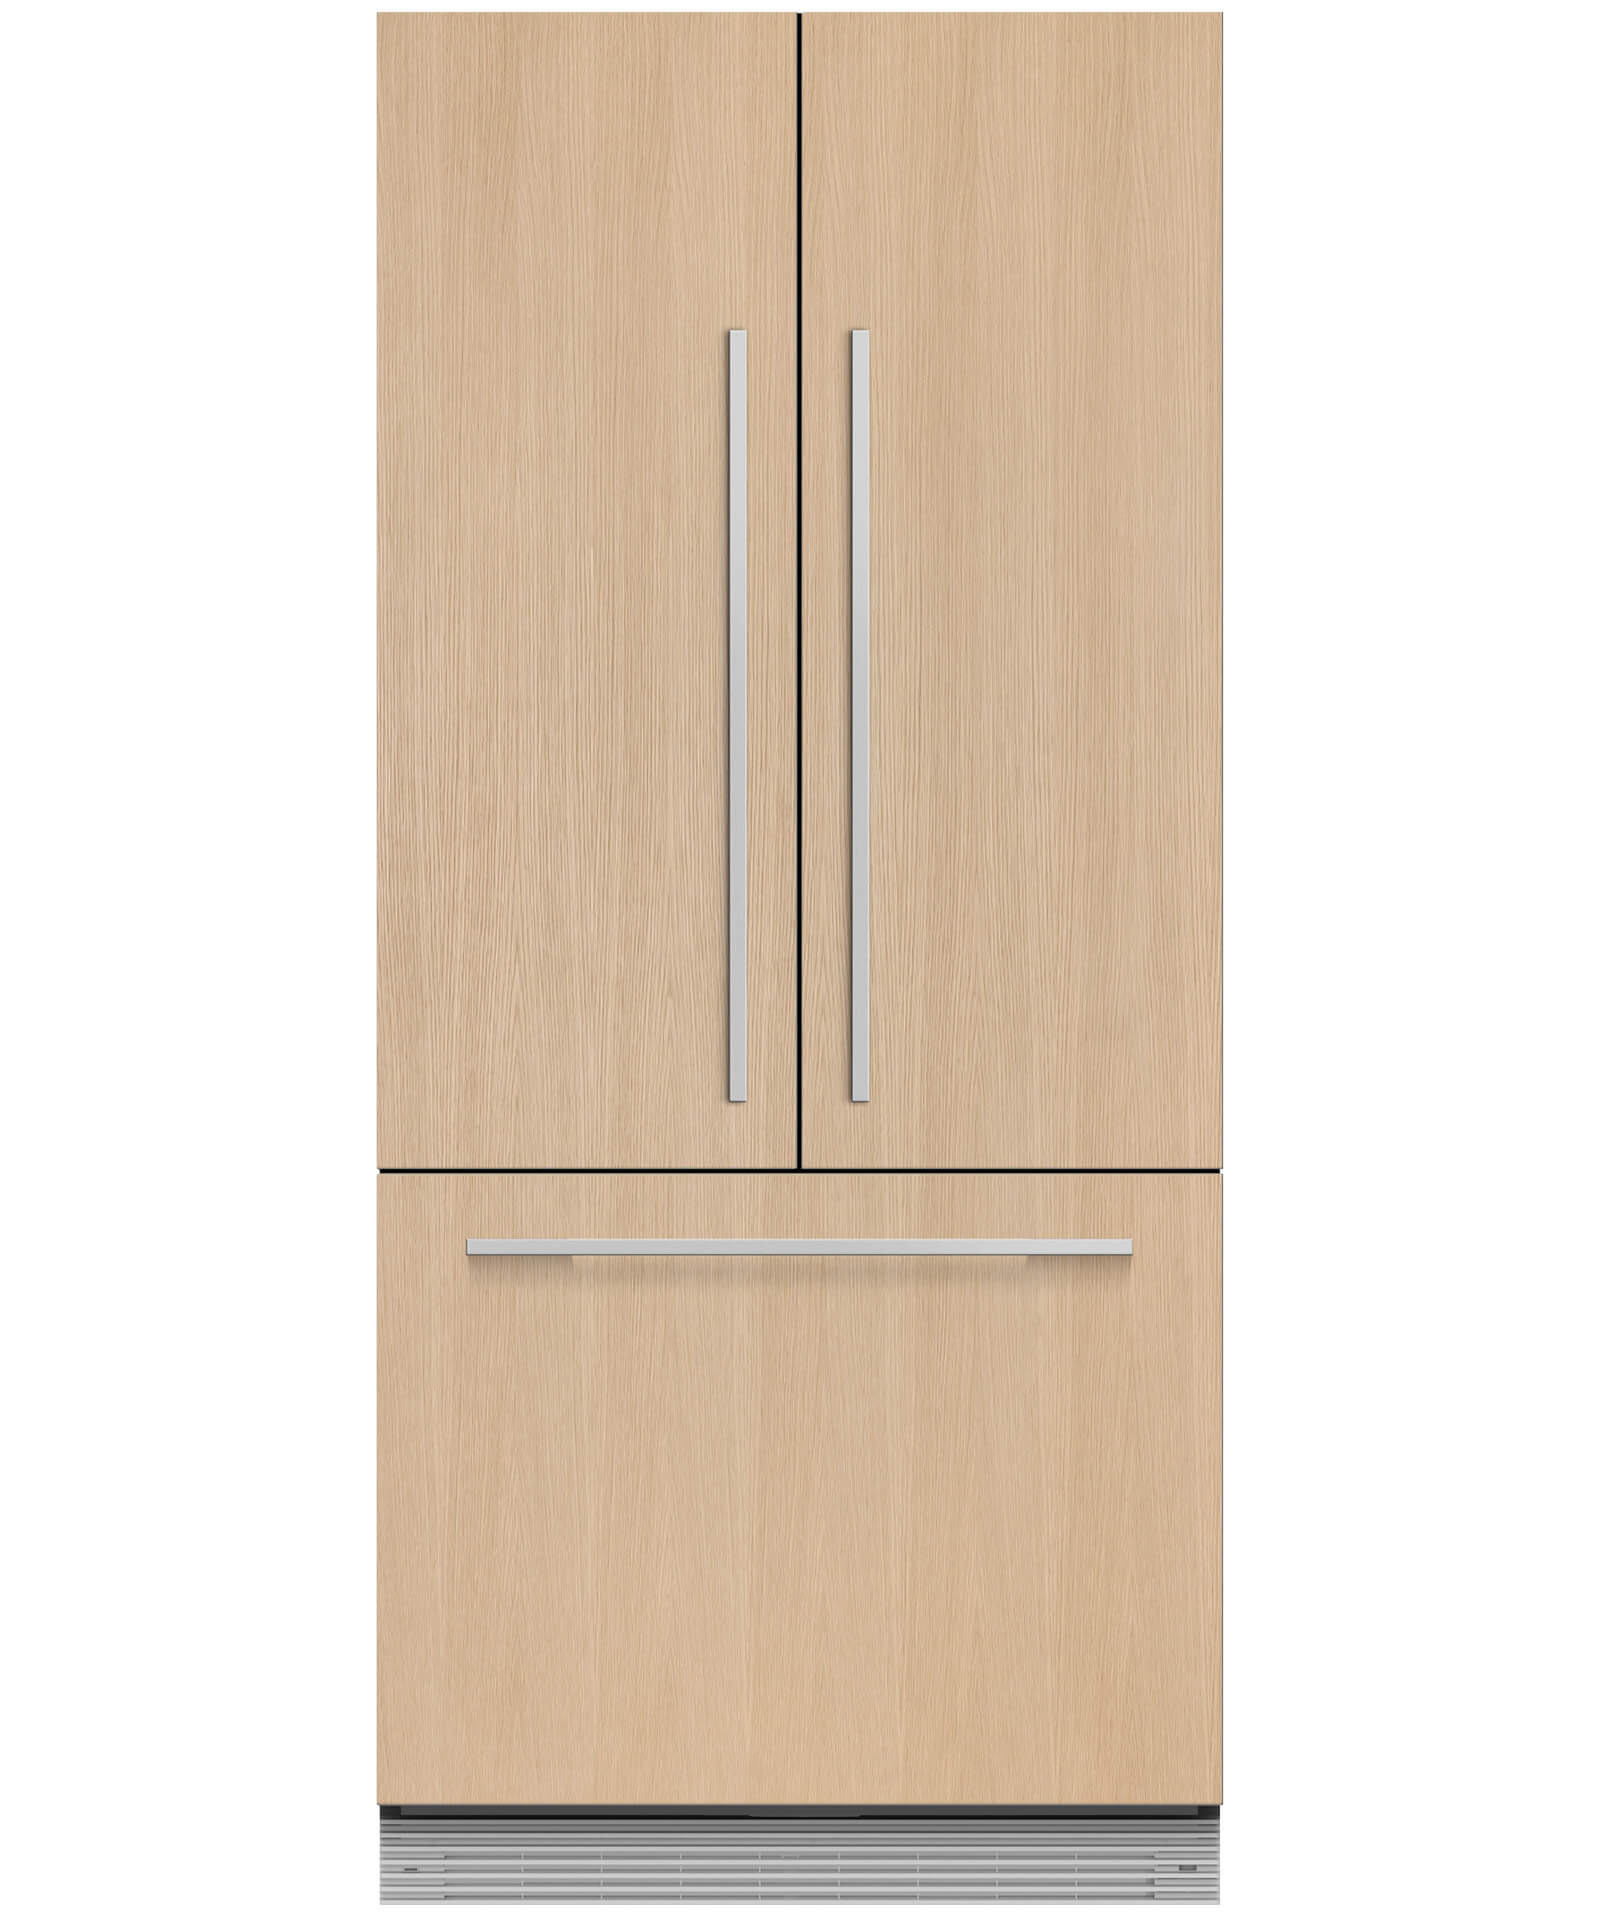 Refrigerator with Cabinet Doors Lovely Integrated French Door Refrigerator 800mm